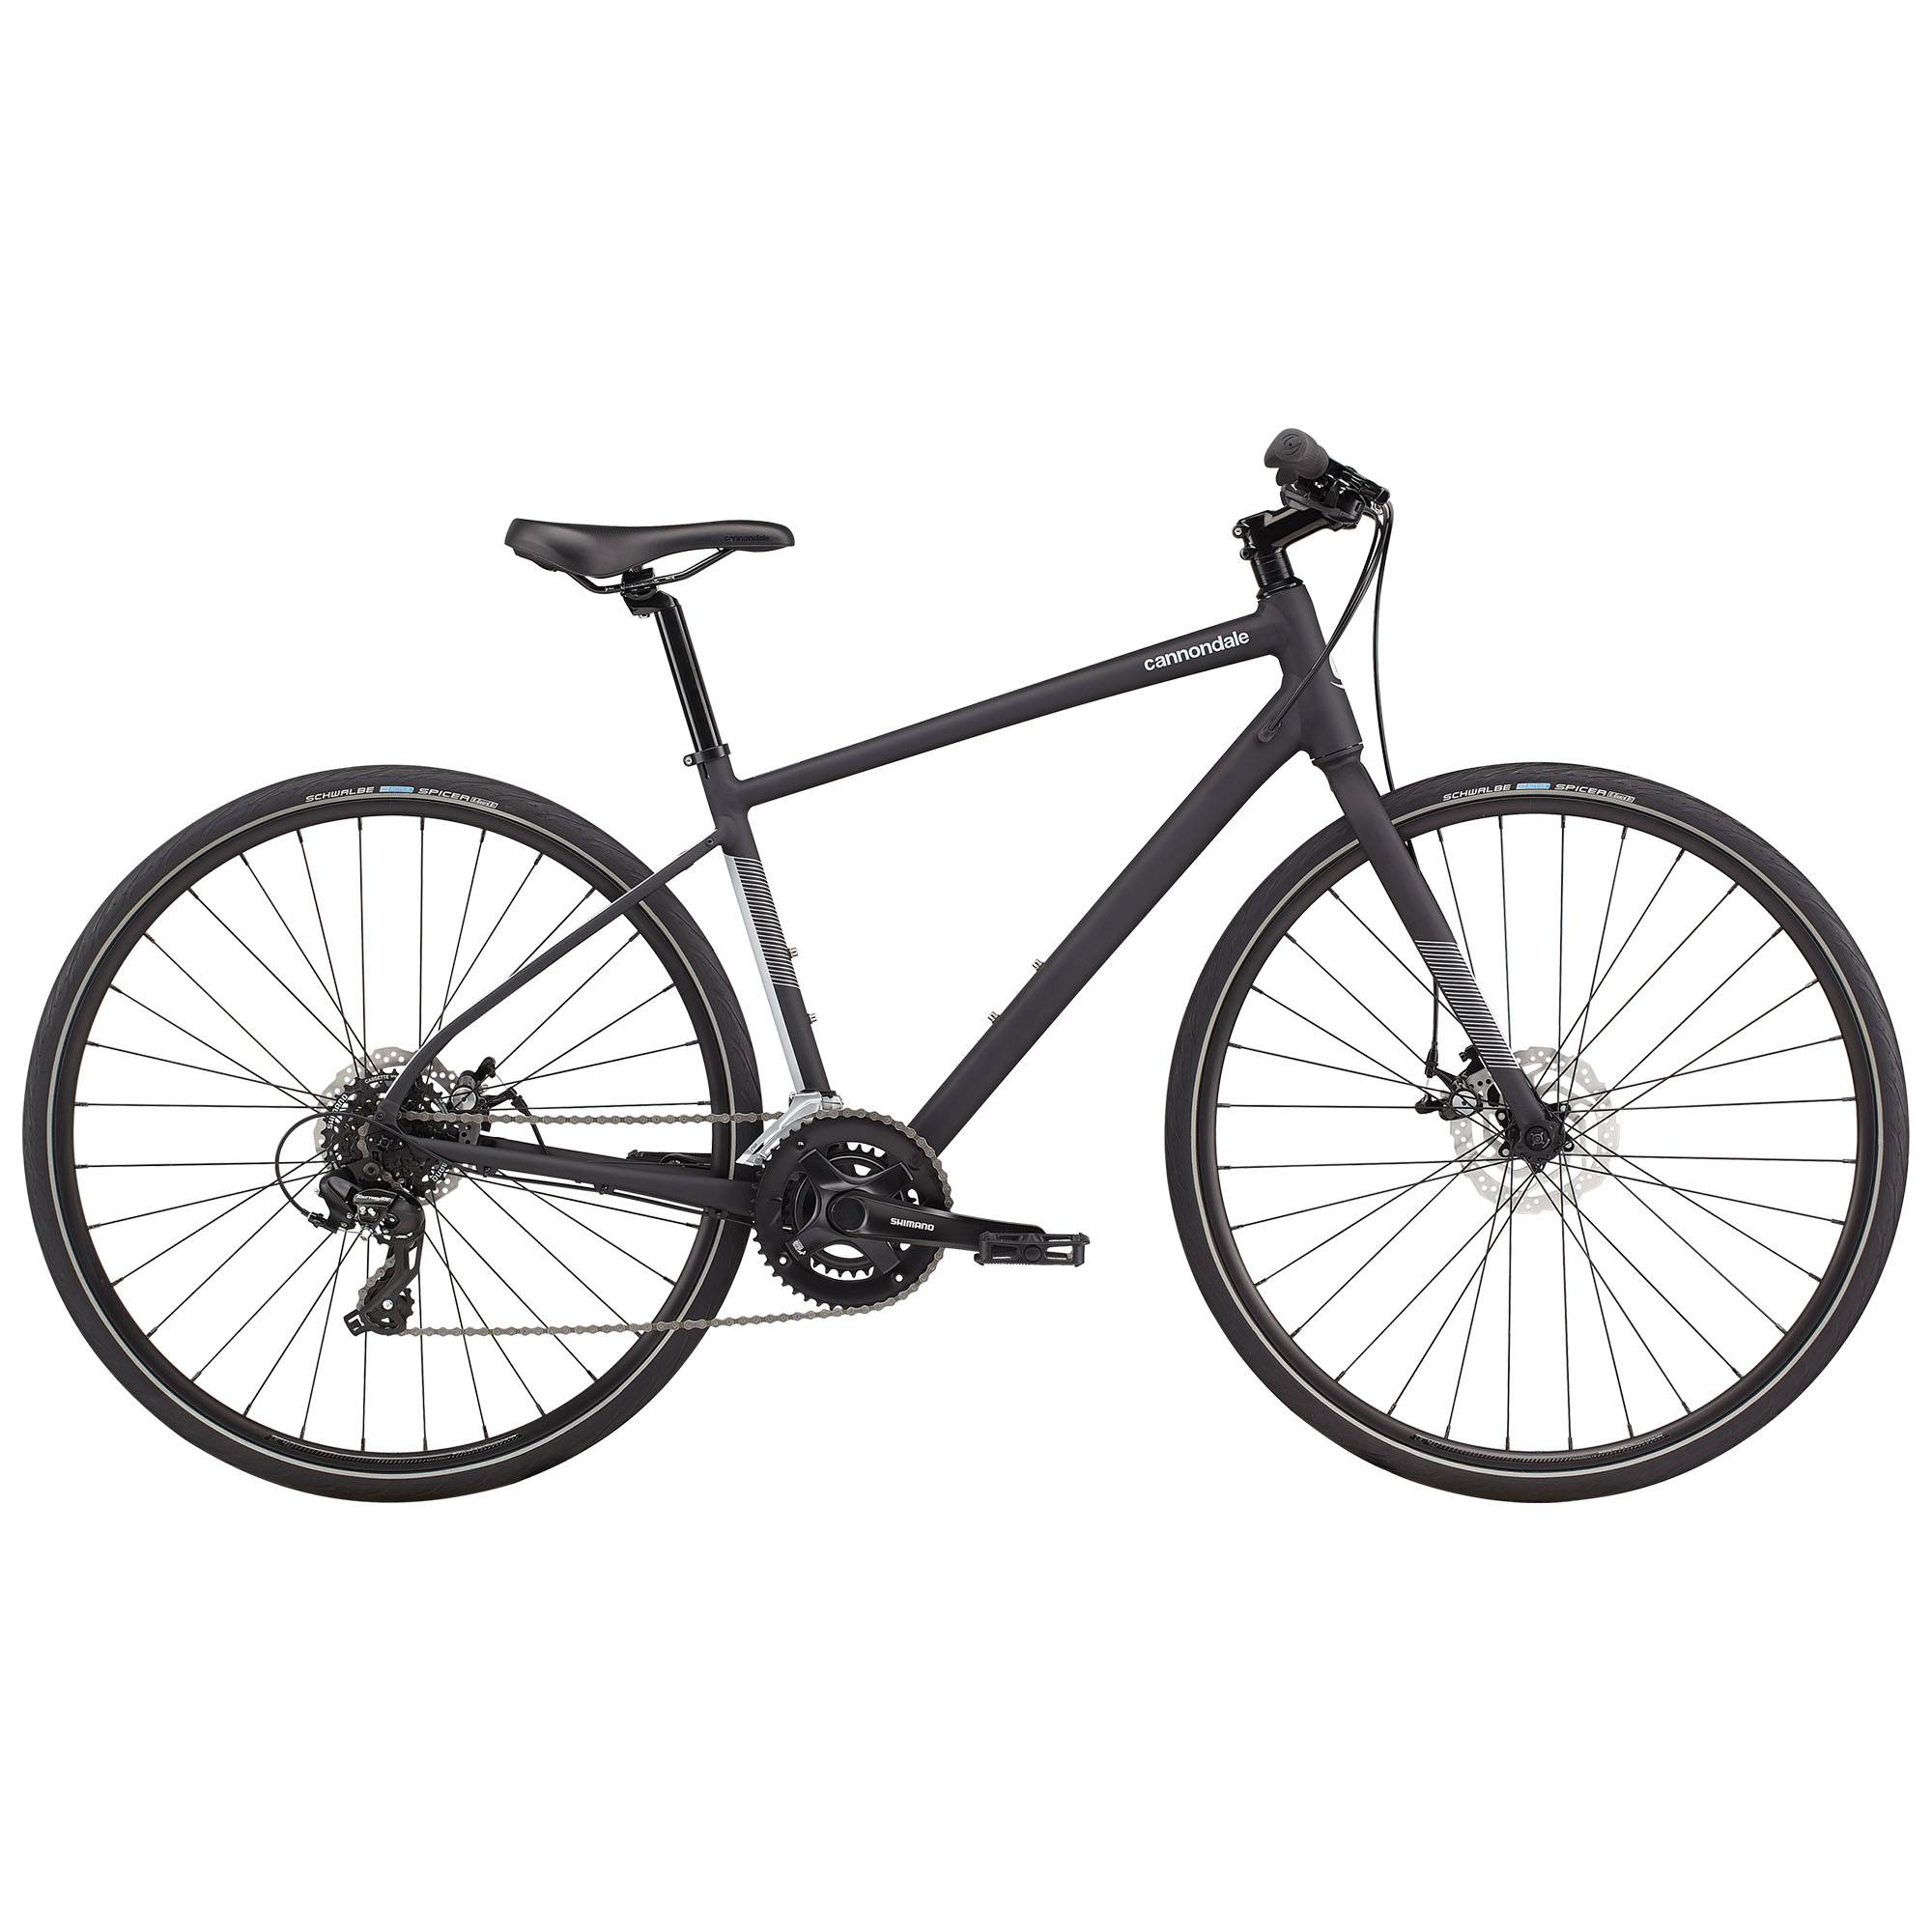 Cannondale Quick 5 Urban Bike '21  - Matte Black - Size: Medium